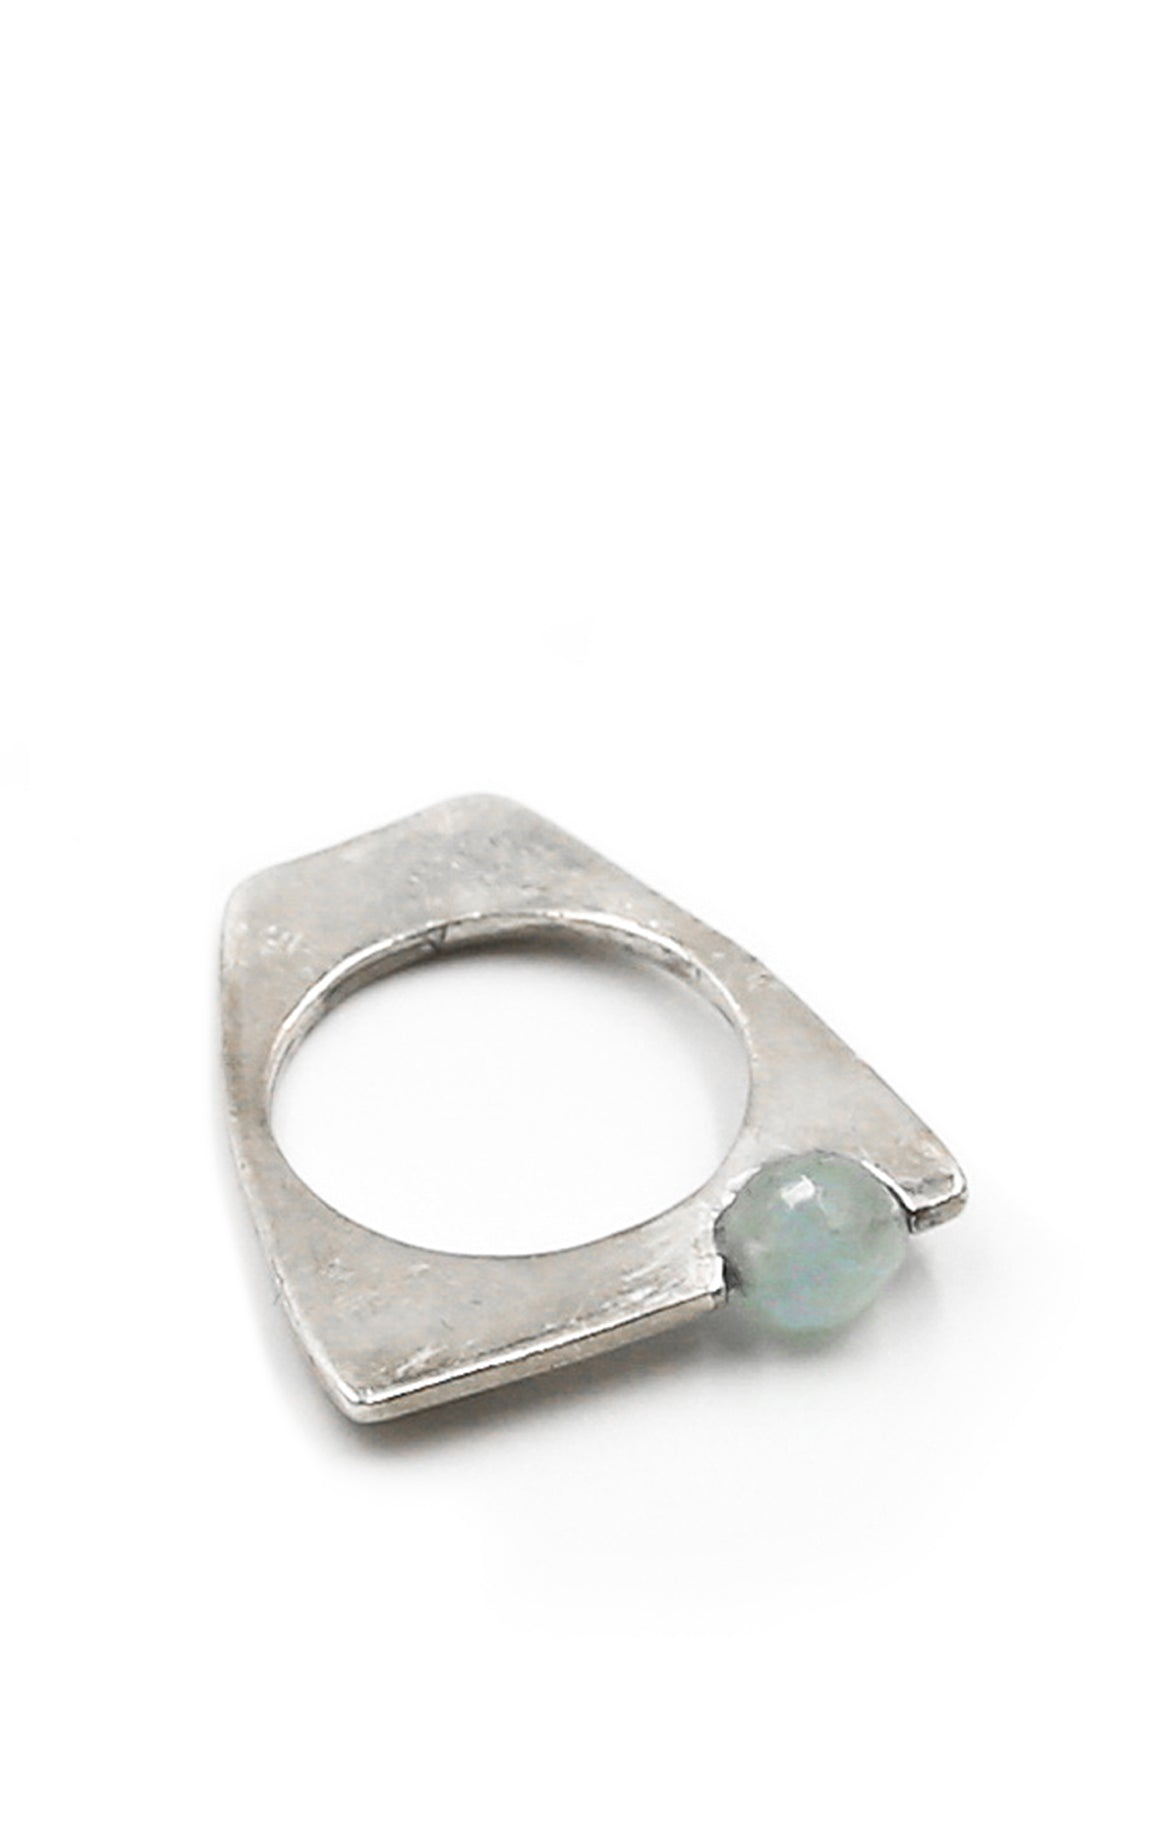 Aquamarine and Agata Ring Set